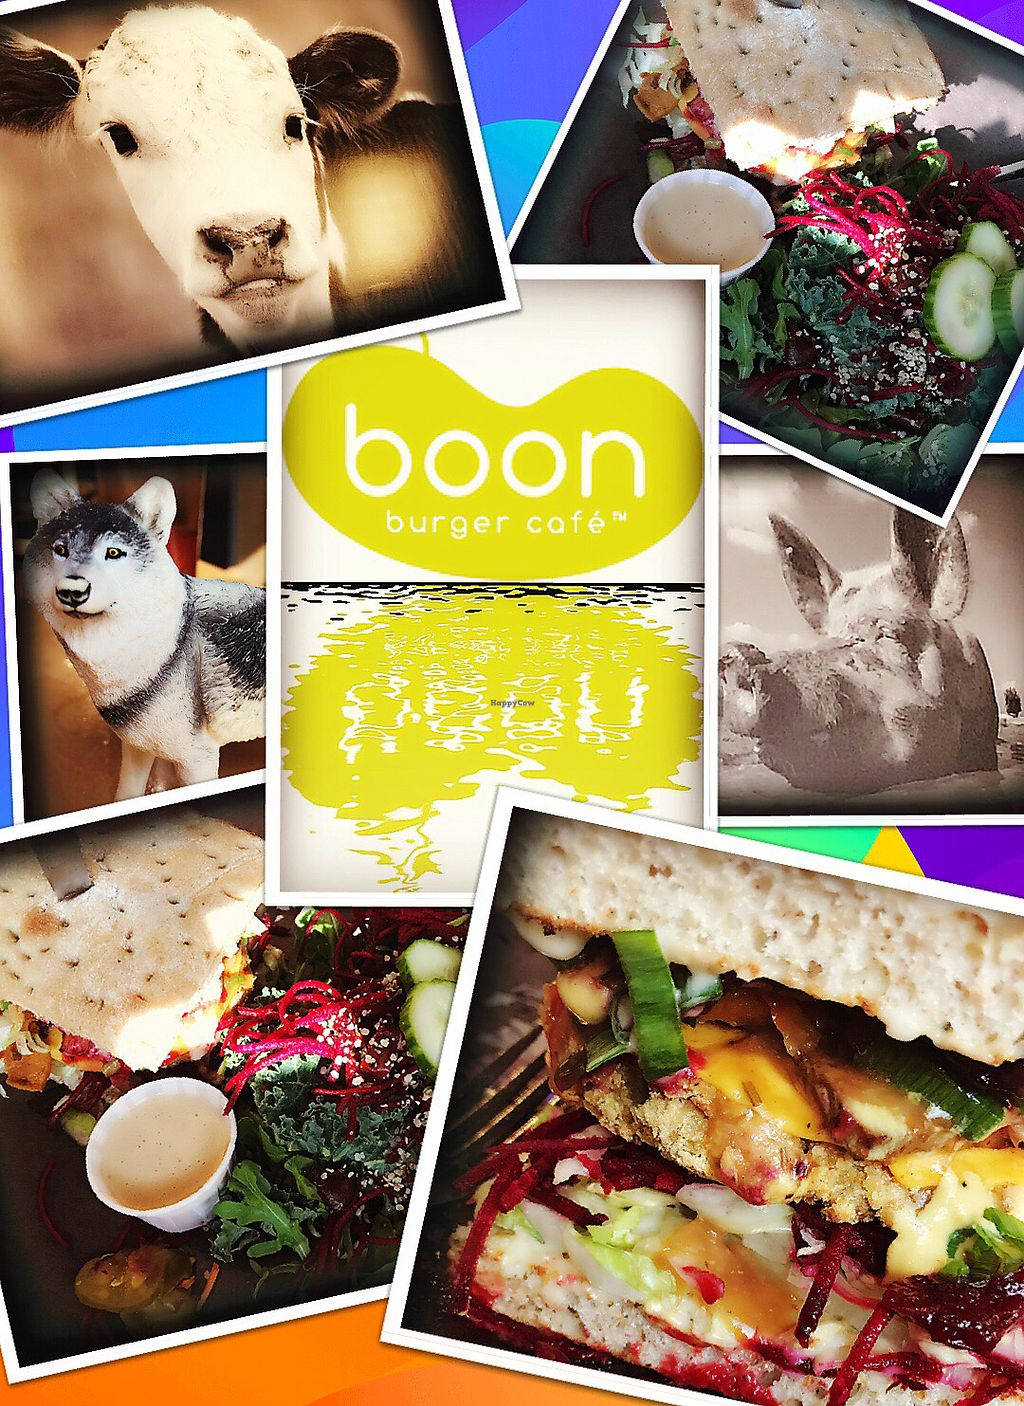 """Photo of Boon Burger Cafe  by <a href=""""/members/profile/Danielle_Unelli"""">Danielle_Unelli</a> <br/>Mmmmm great food  <br/> September 18, 2017  - <a href='/contact/abuse/image/74657/305800'>Report</a>"""